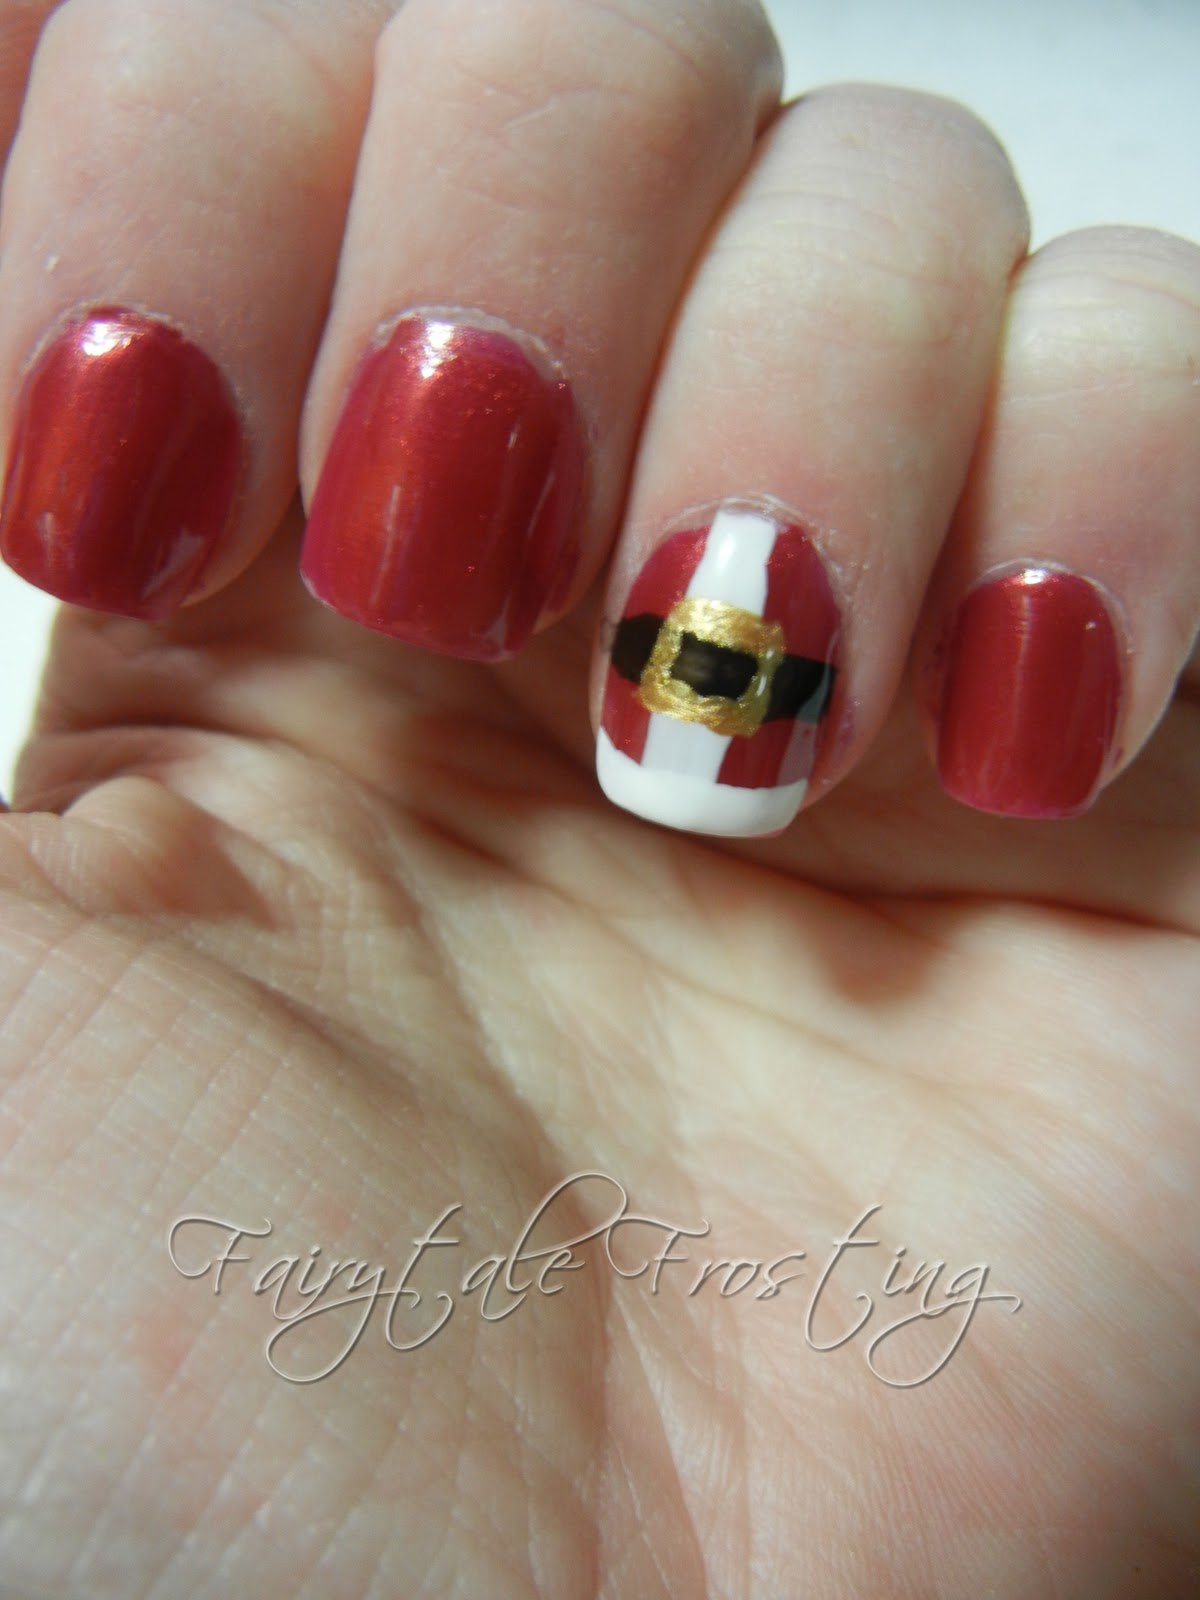 Christmas Nail Art French Manicure Red With White: Fairytale Frosting: Holiday Nail Art